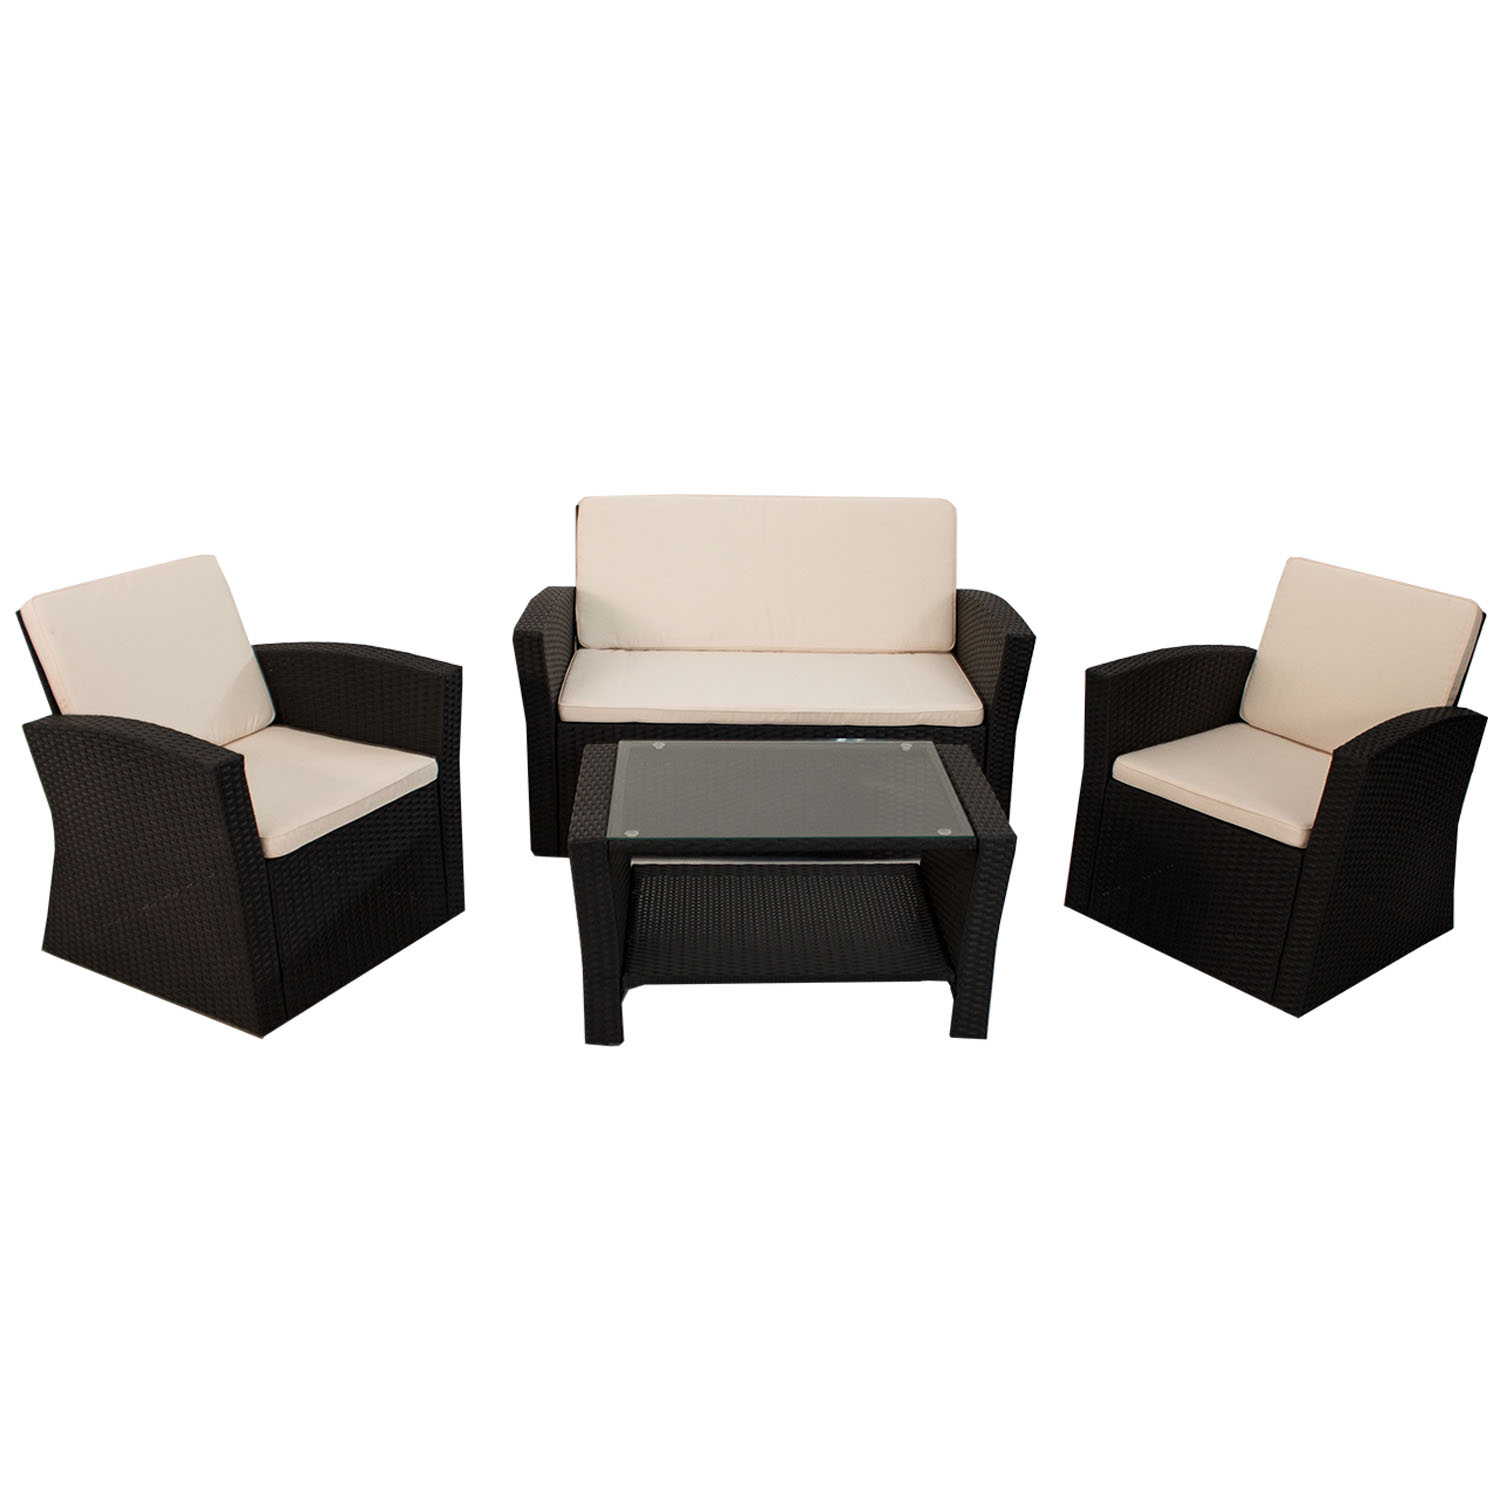 gartenm bel polyrattan lounge gartenset rattan sitzgruppe garnitur palm beach. Black Bedroom Furniture Sets. Home Design Ideas